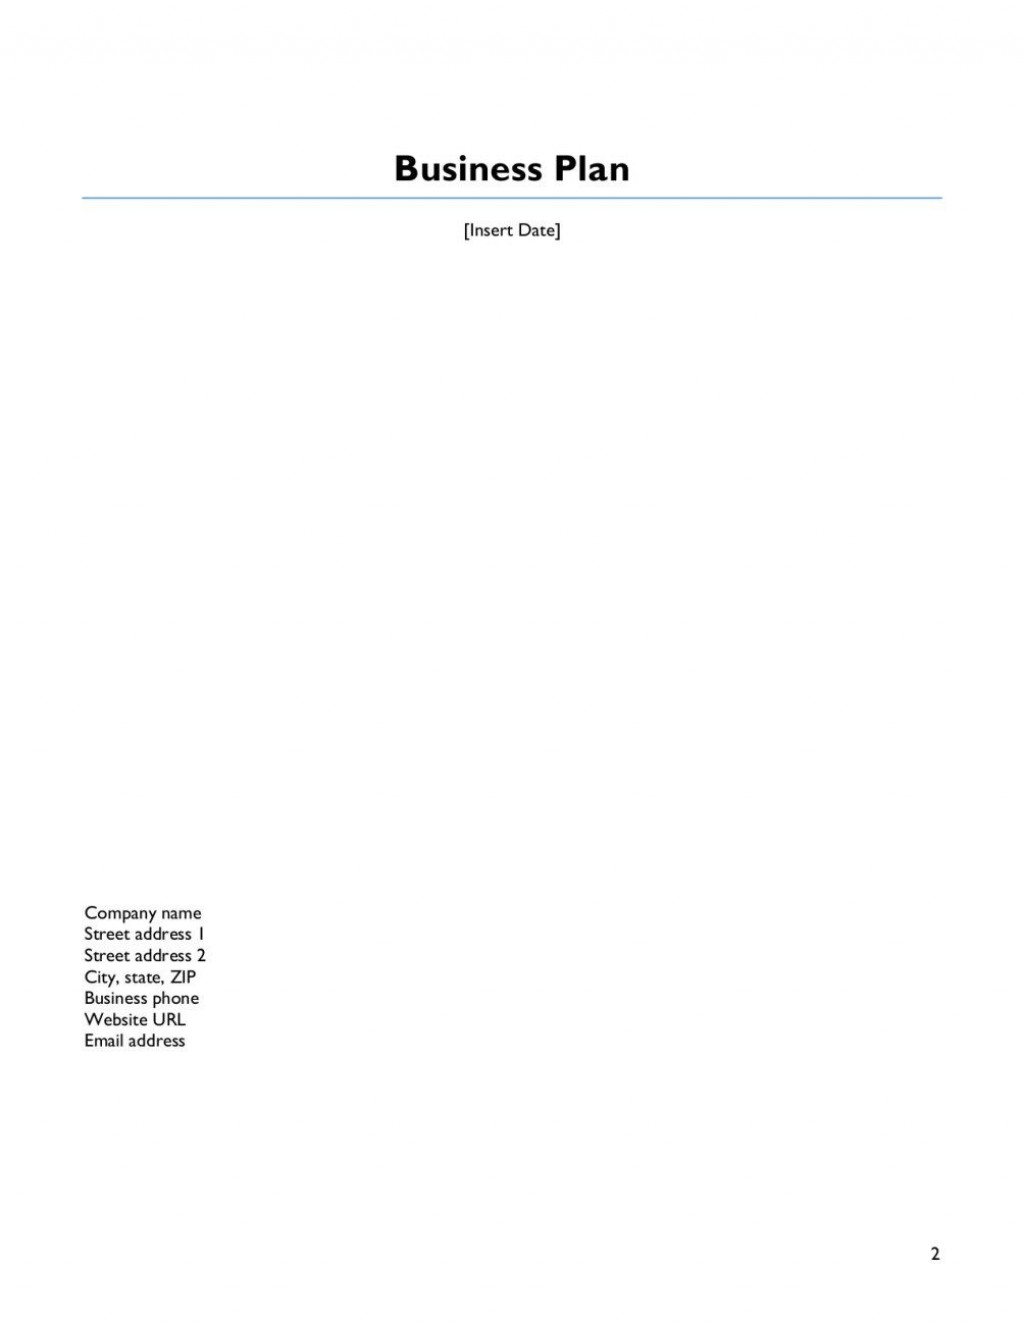 007 Archaicawful Score Deluxe Busines Plan Template Example Large